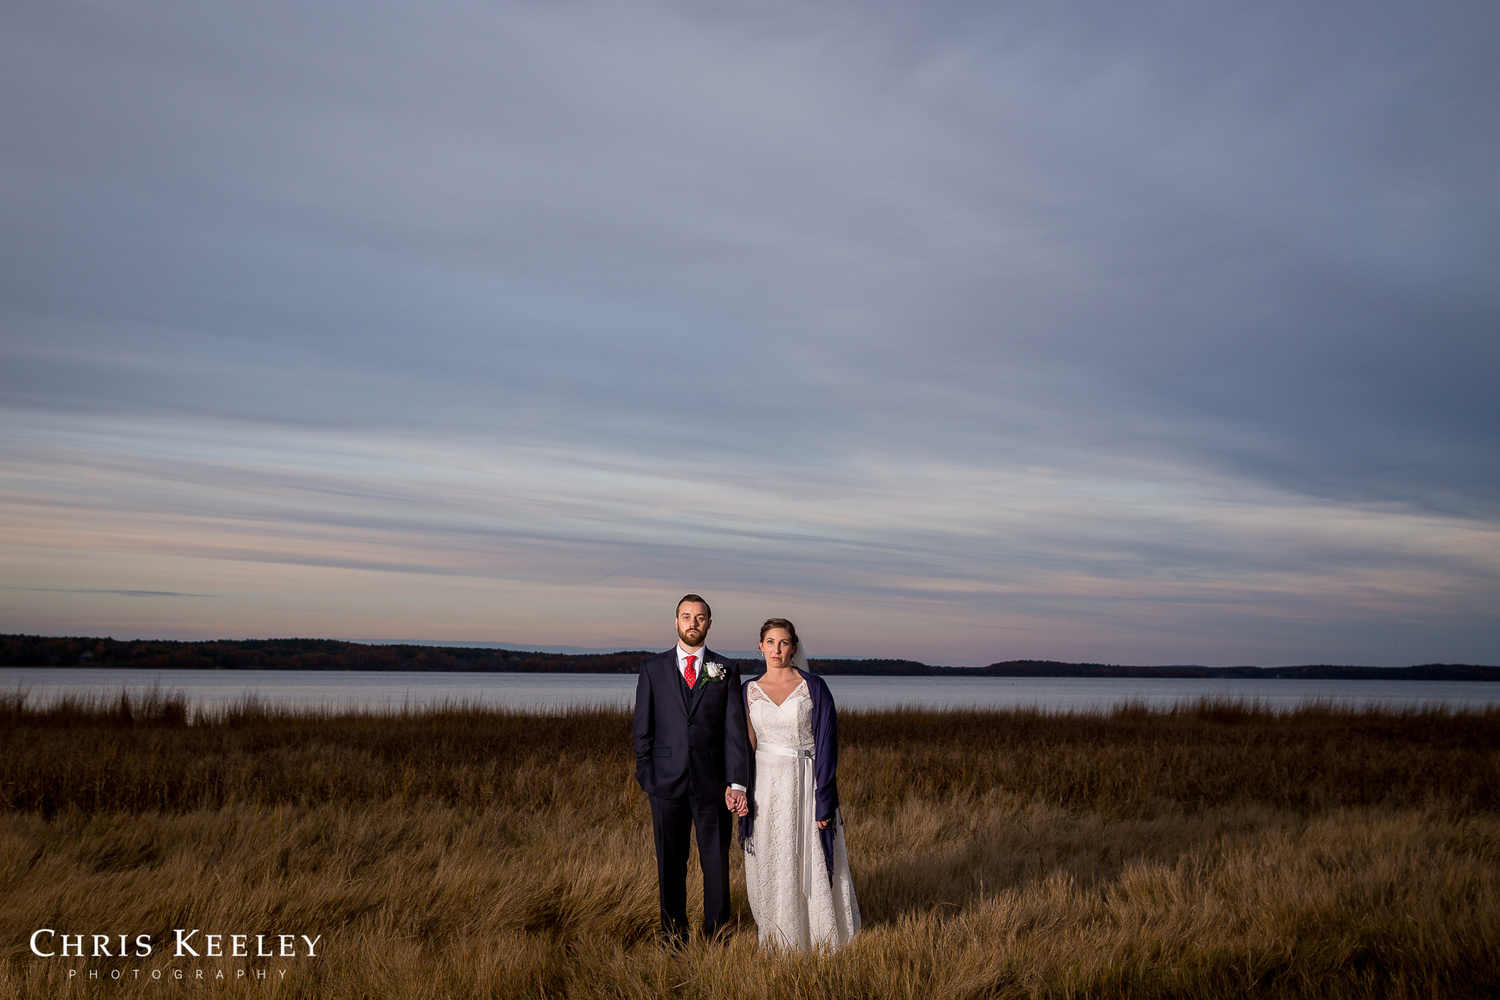 Wedding Portrait, American Gothic Style by Chris Keeley